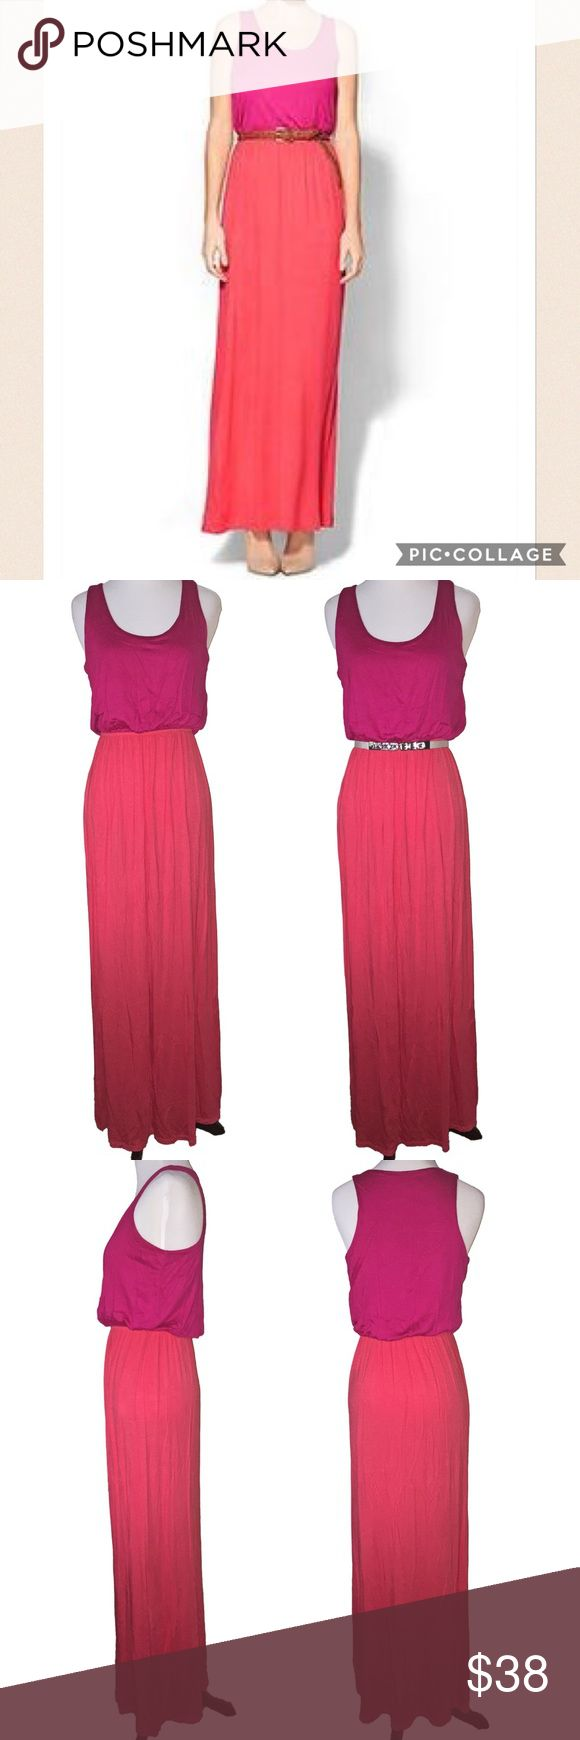 NWOT Hive & Honey Quinn Colorblock Maxi, S NWOT Hive & Honey Quinn Colorblock Maxi in size Small. Never worn, new condition. Simple pink and orange colorblock easy wear maxi. Add a belt around the waist to add personality (one pictured is not for sale). Scoop neck, sleeveless, elastic waist. Soft and stretchy. Purchased from Piperlime. Made in the USA. 96% rayon, 4% spandex. Machine wash cold. Hive & Honey Dresses Maxi